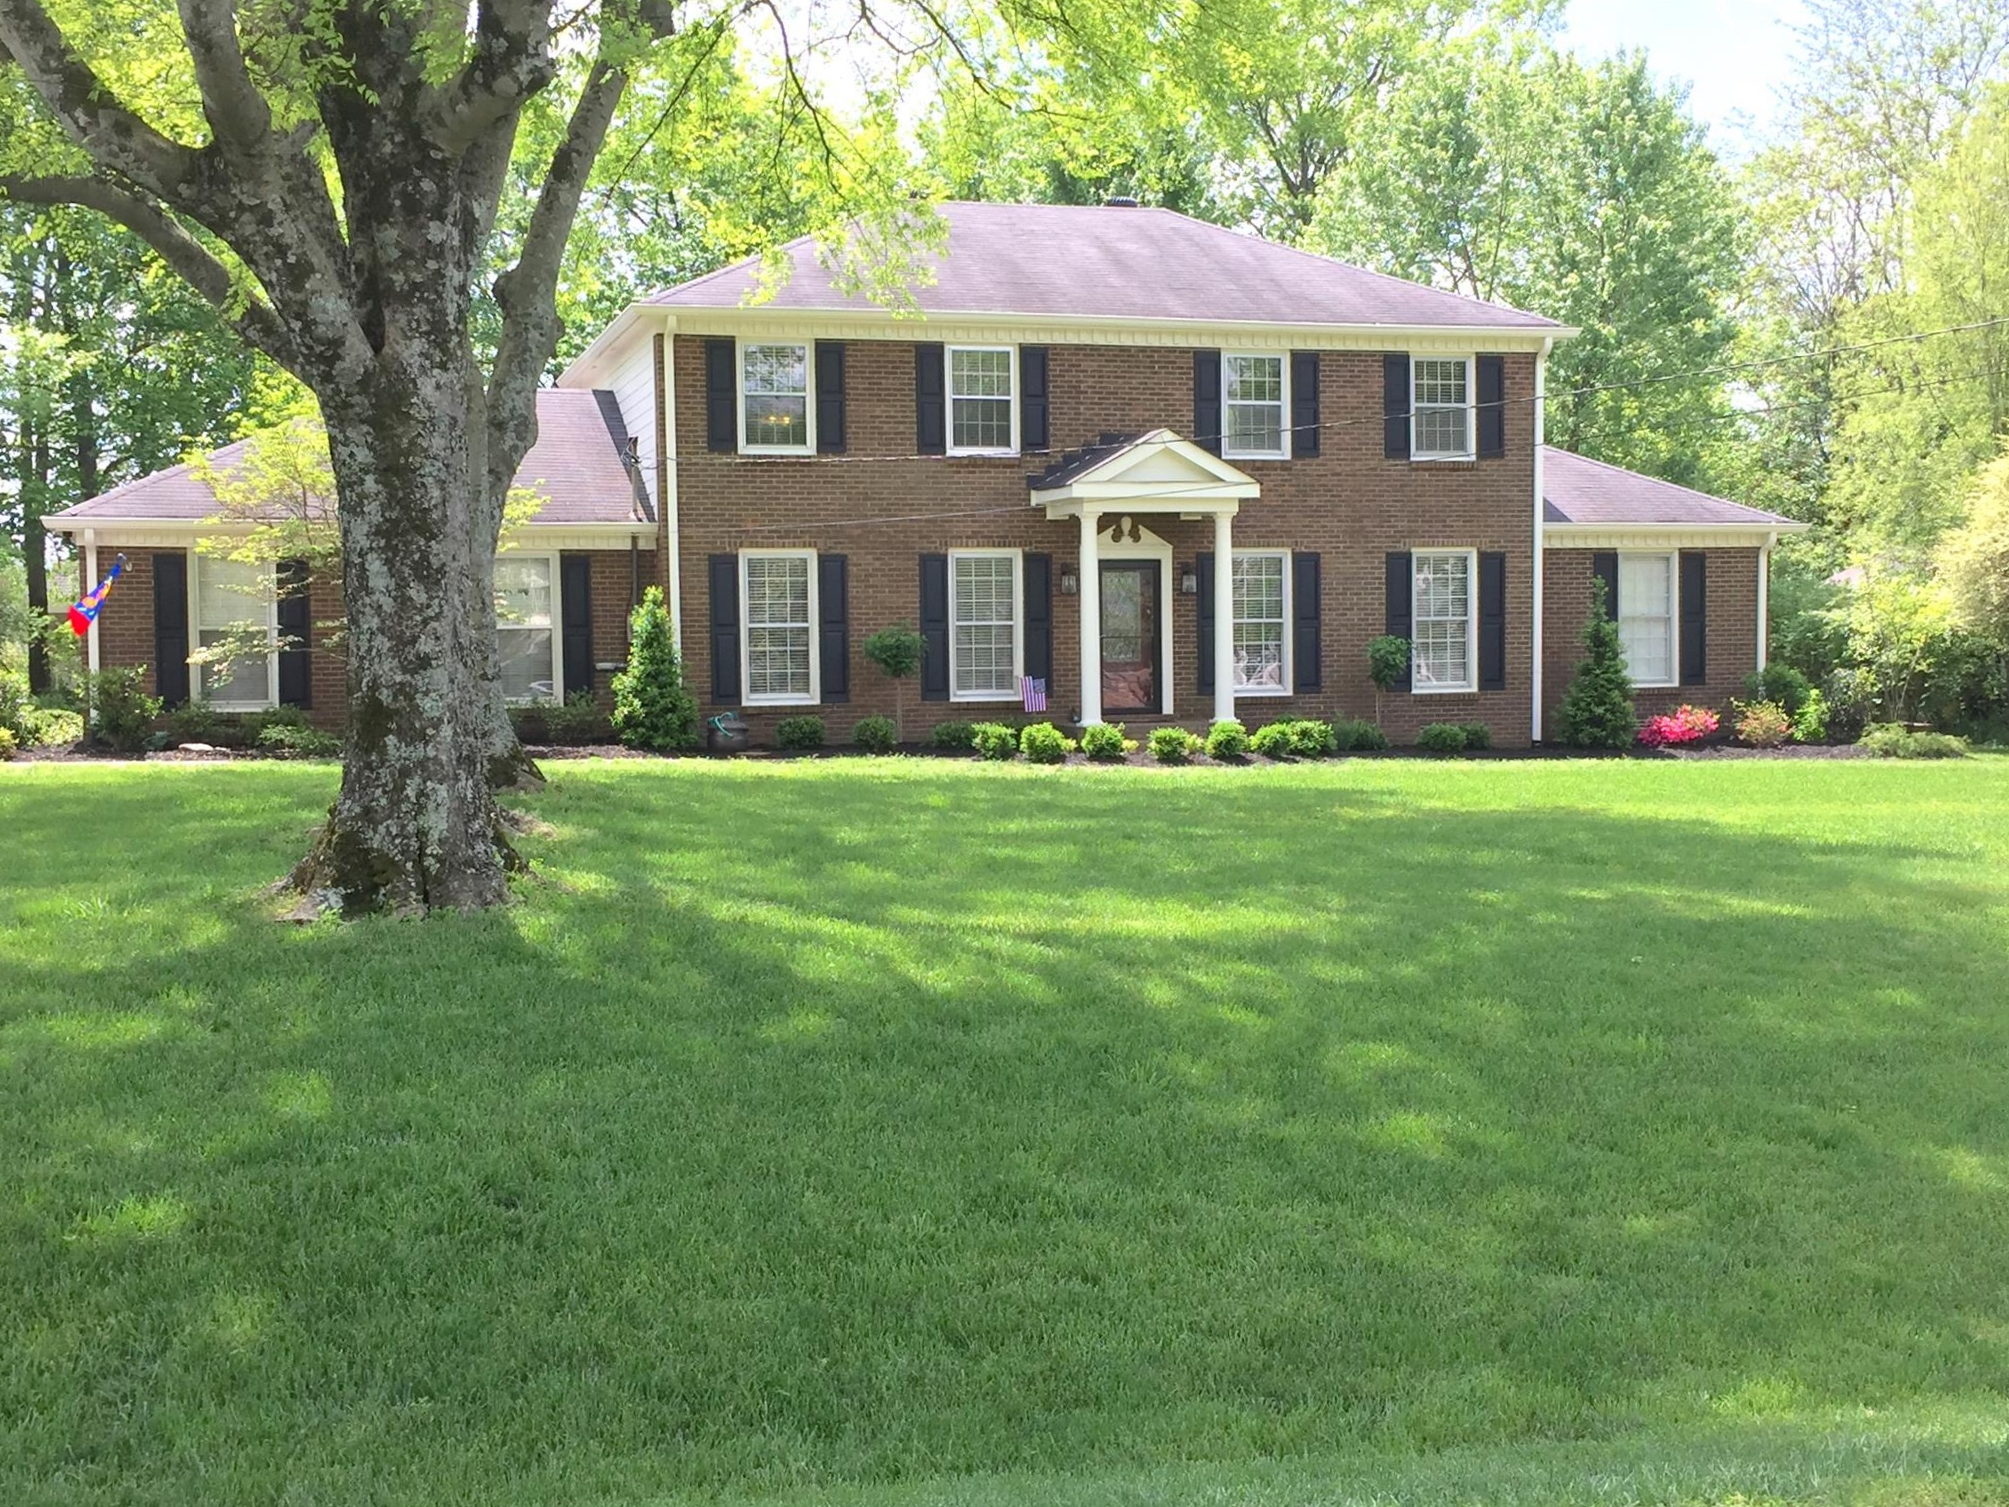 135 St. Andrews Dr, Hendersonville, TN   PURCHASED PRICE $319,000  4 BEDS · 2 BATHS · 2485 SQF